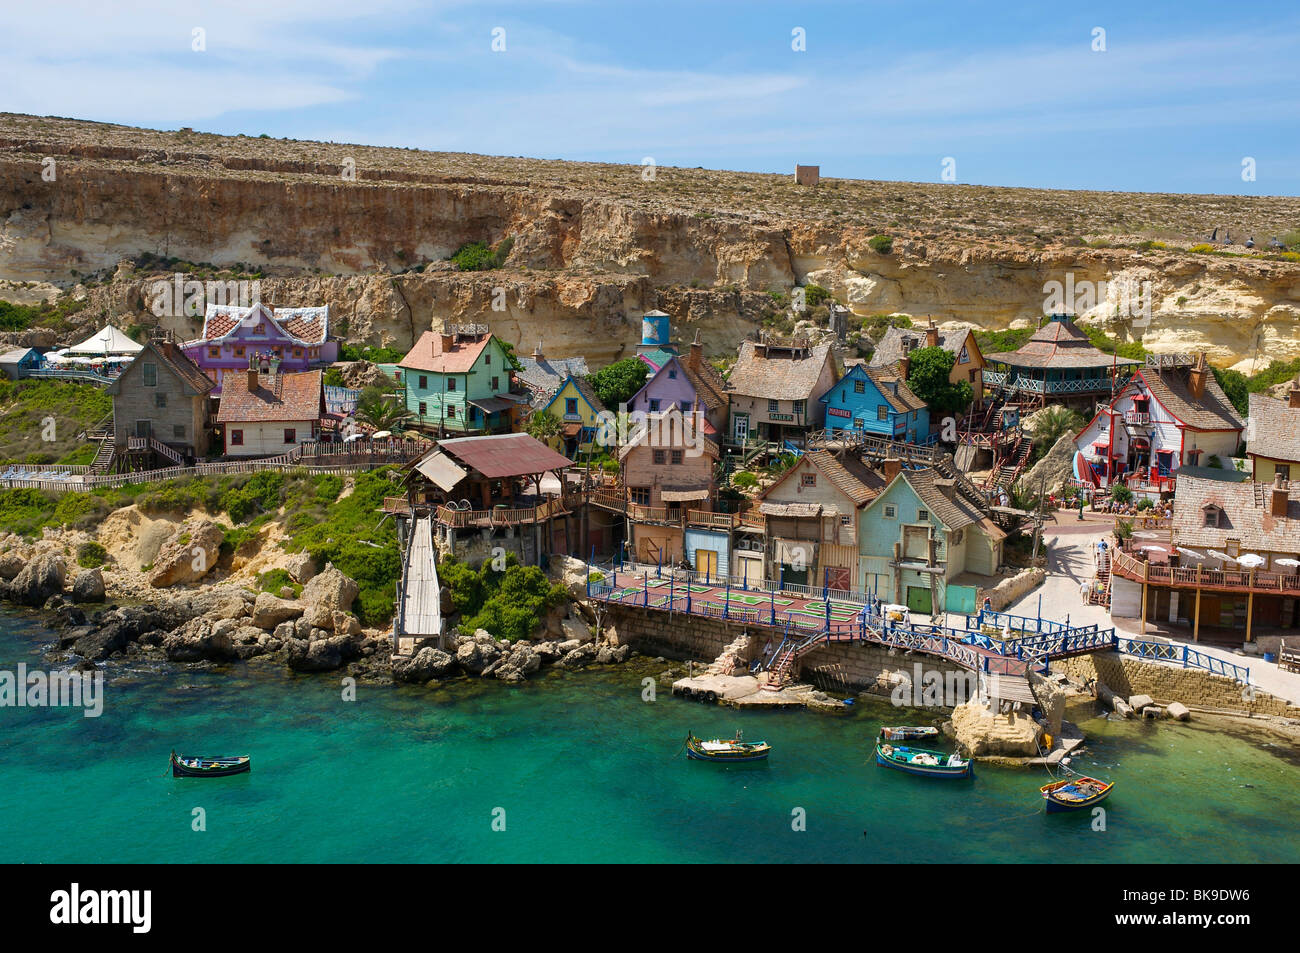 Popeye Village in Malta, Europa Stockbild